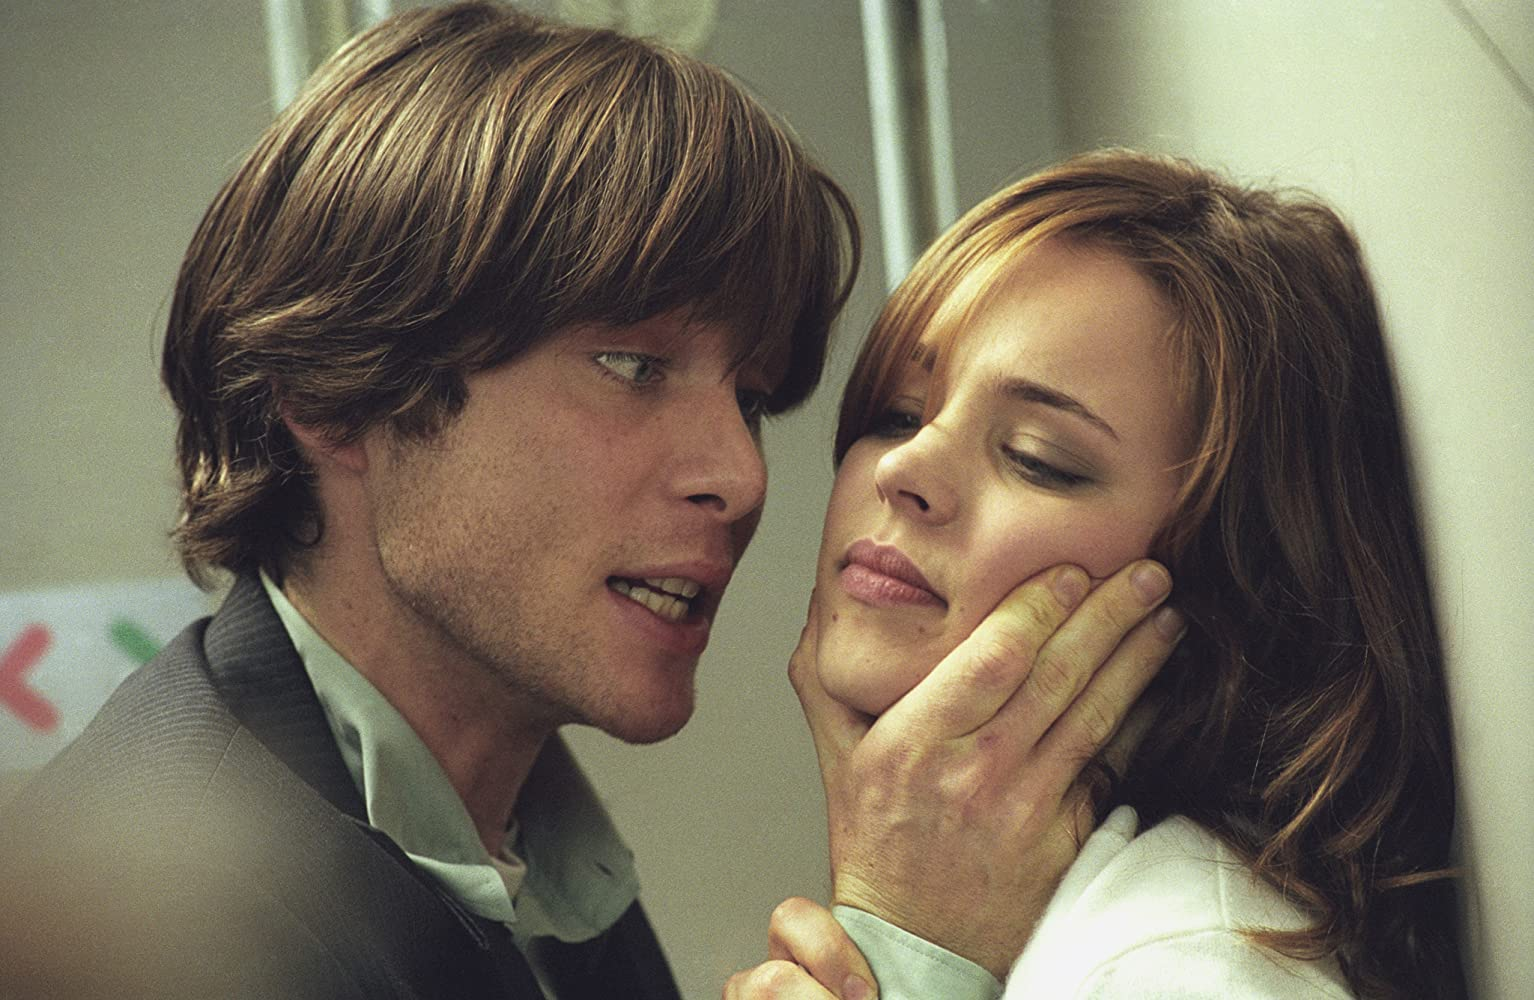 Cillian Murphy and Rachel McAdams in Red Eye (2005)